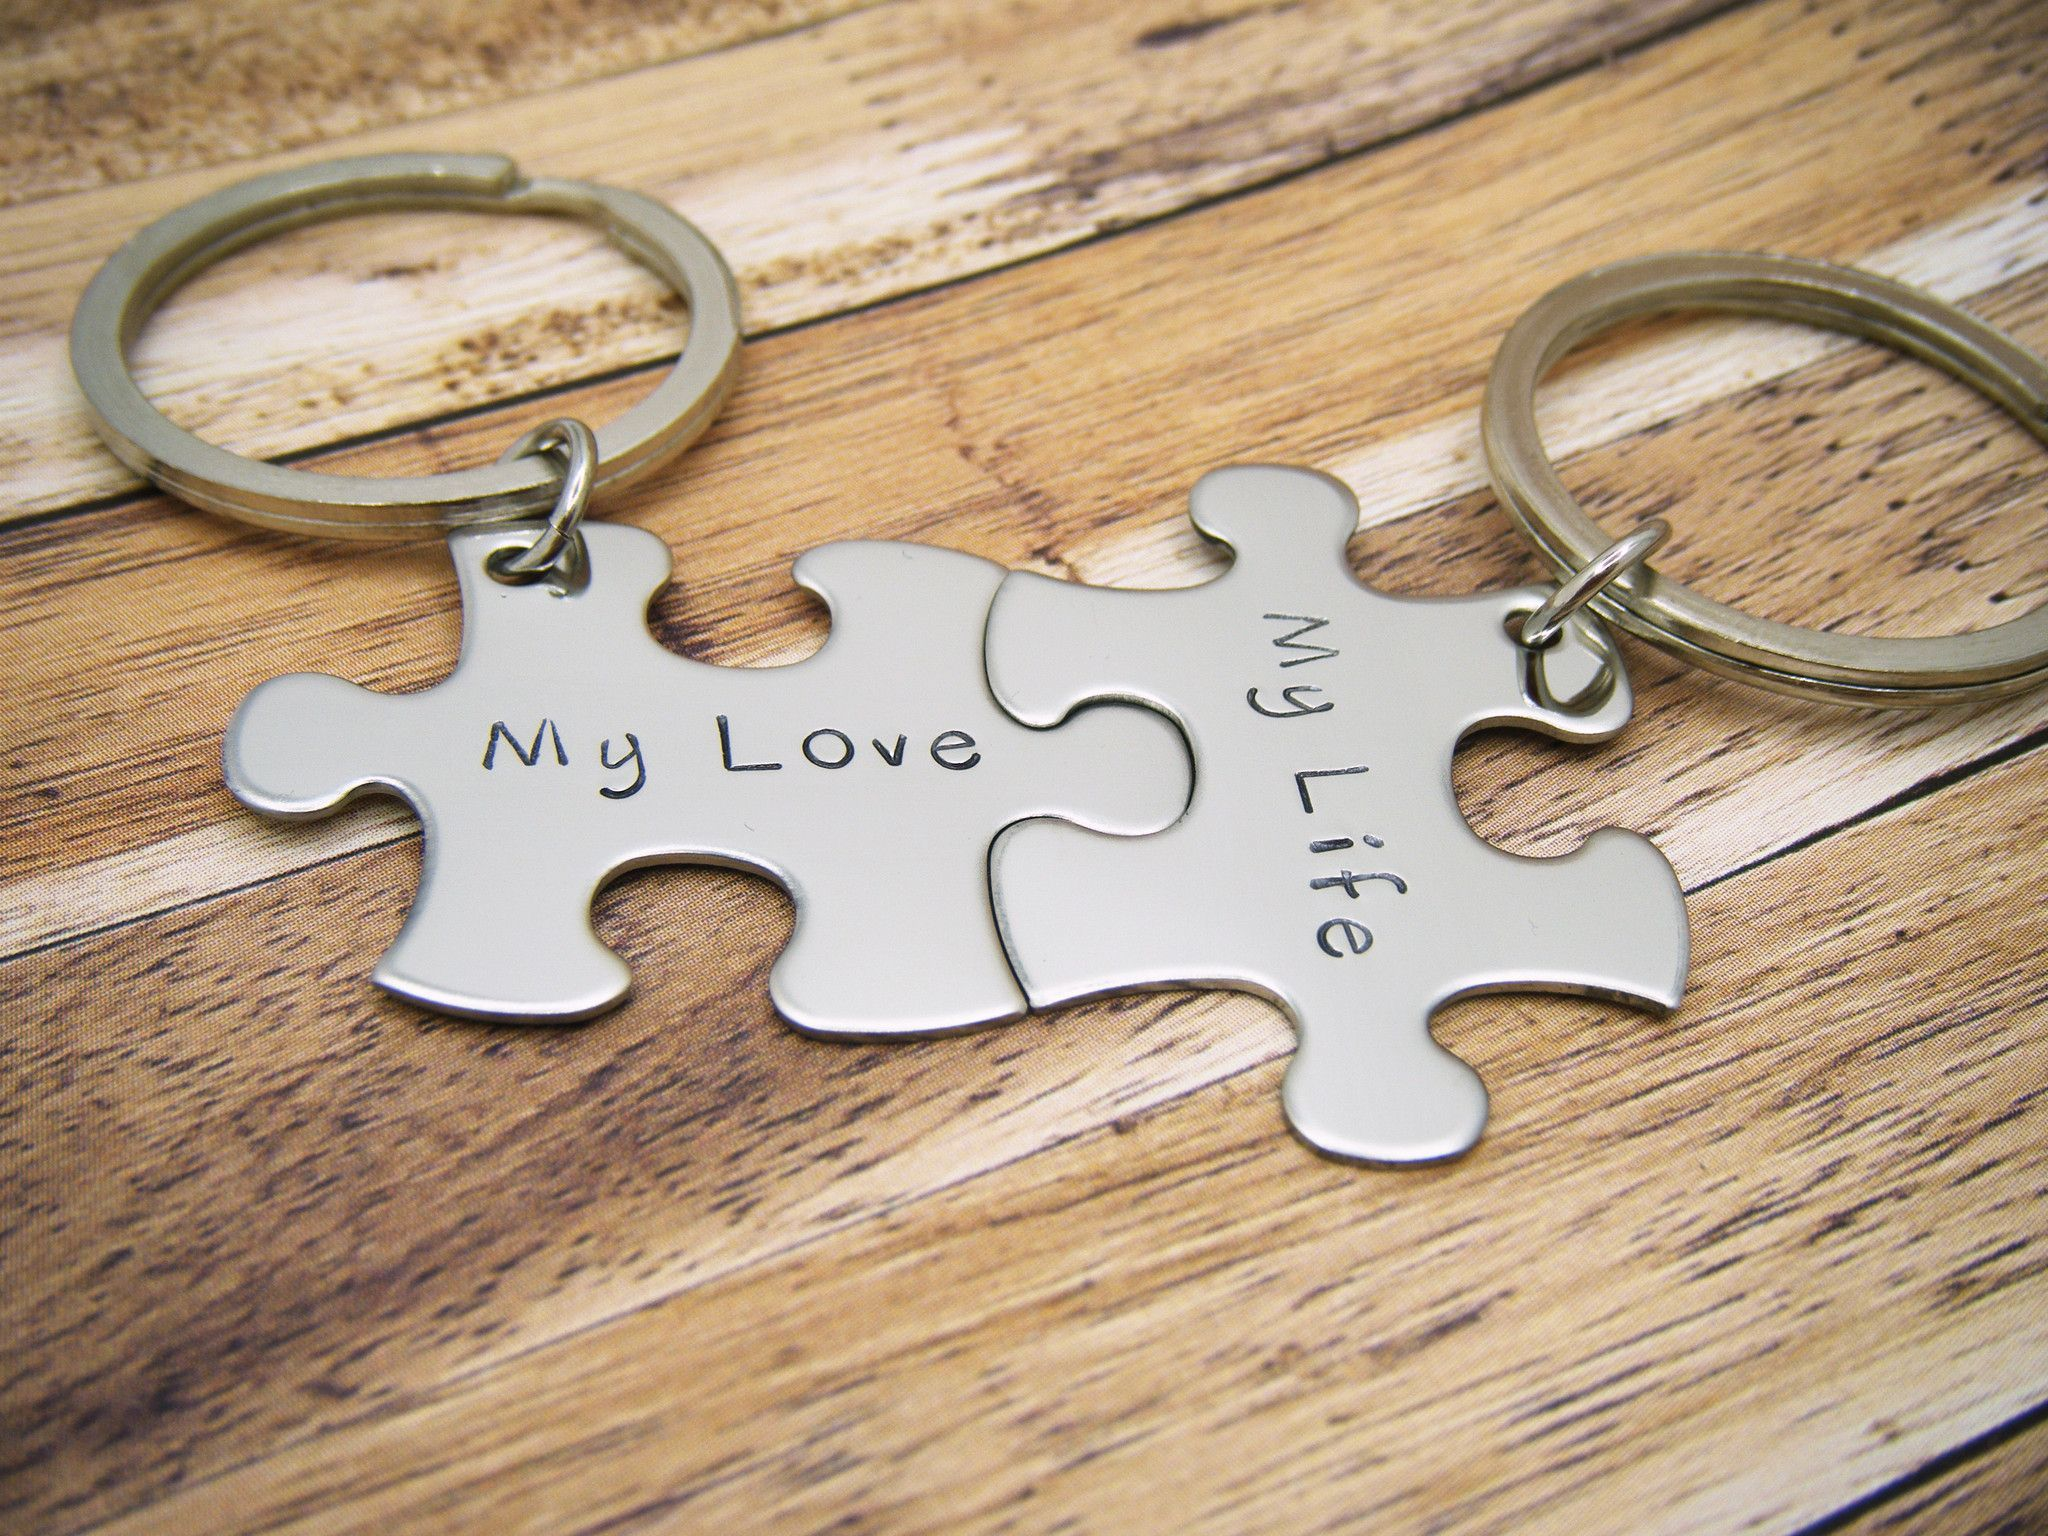 My love my life couples keychains anniversary gift couples gift